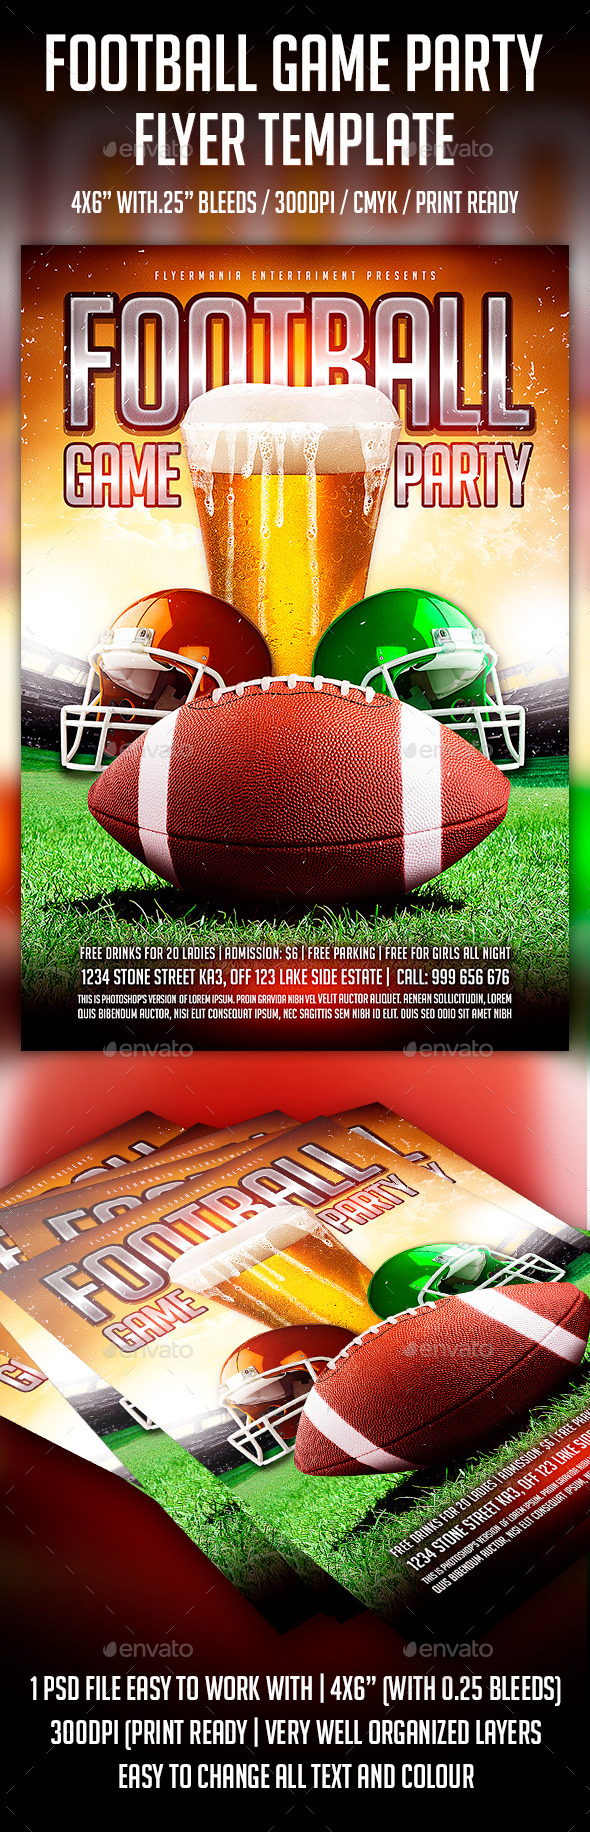 football game event flyer stock photos graphics. Black Bedroom Furniture Sets. Home Design Ideas